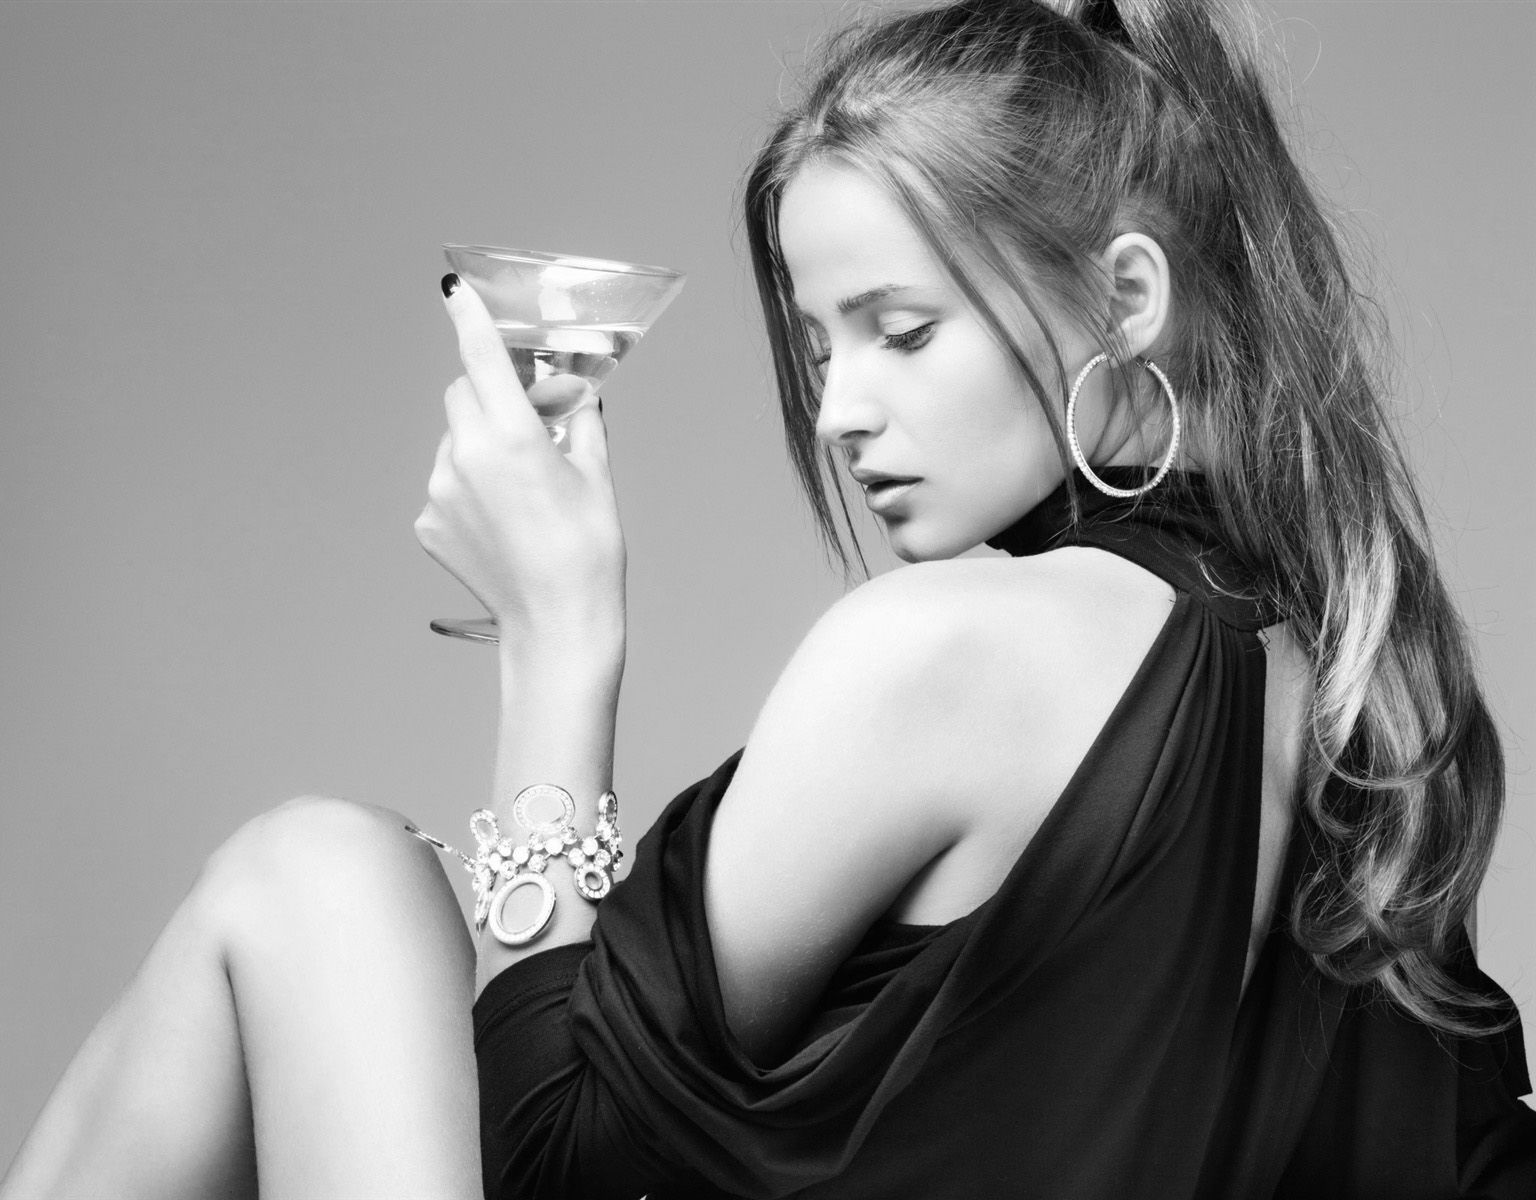 Girl-with-martini-cocktail bkwt.jpg